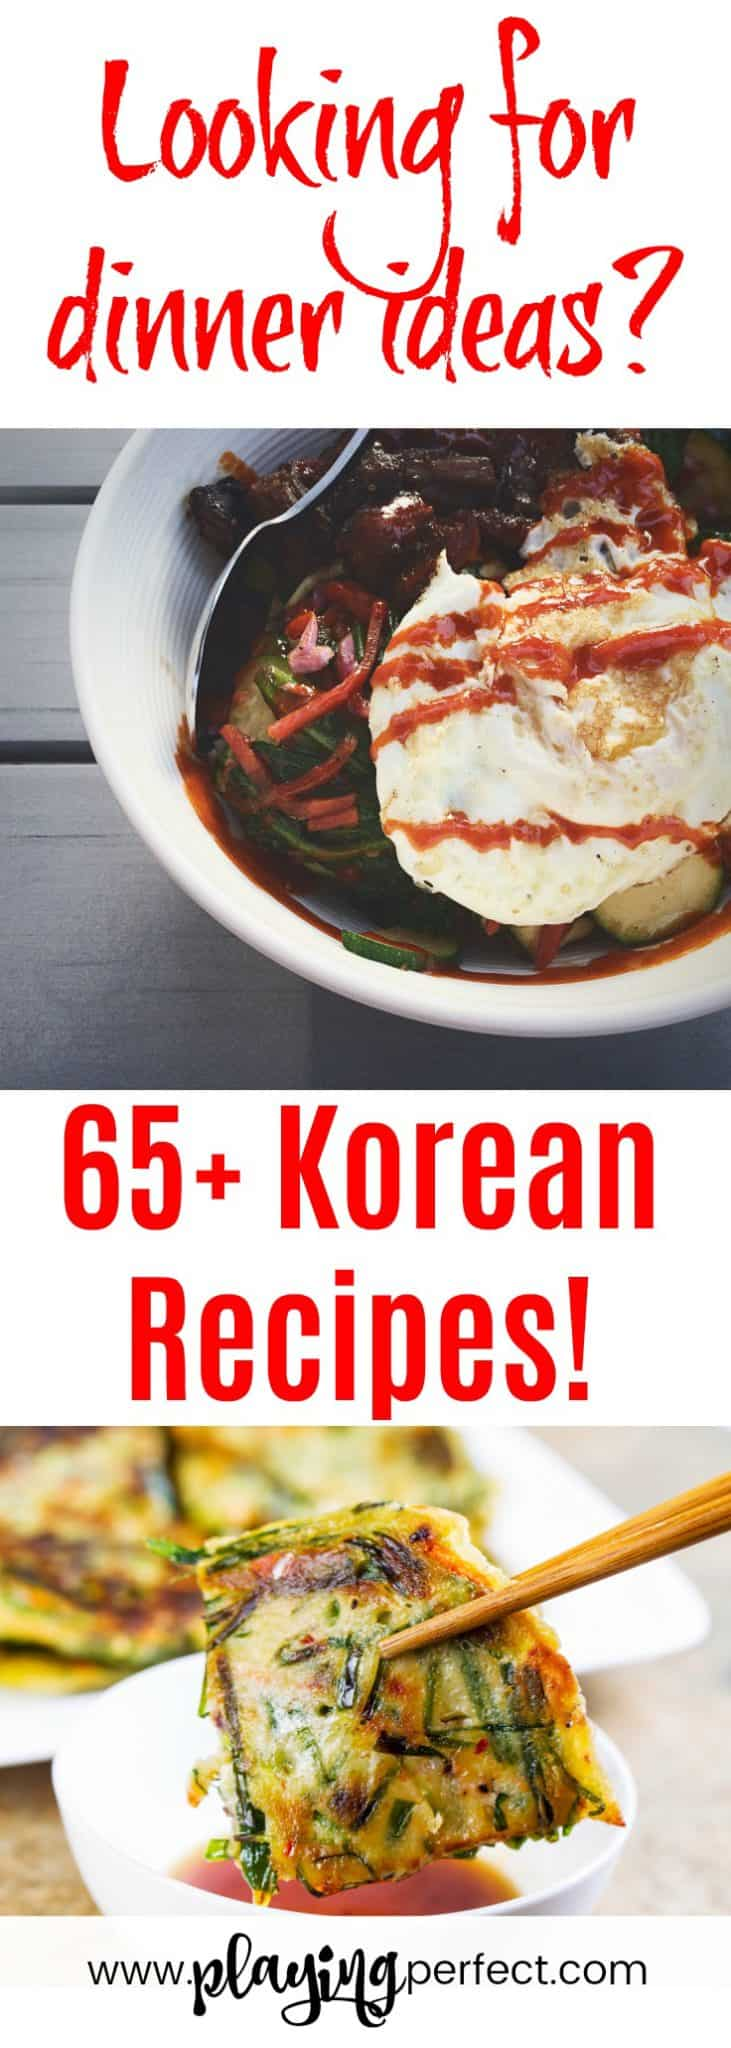 73 korean recipes that will make you excited to get in the kitchen korean food for homecooked meals korean dinner ideas with korean instant pot recipes korean forumfinder Images